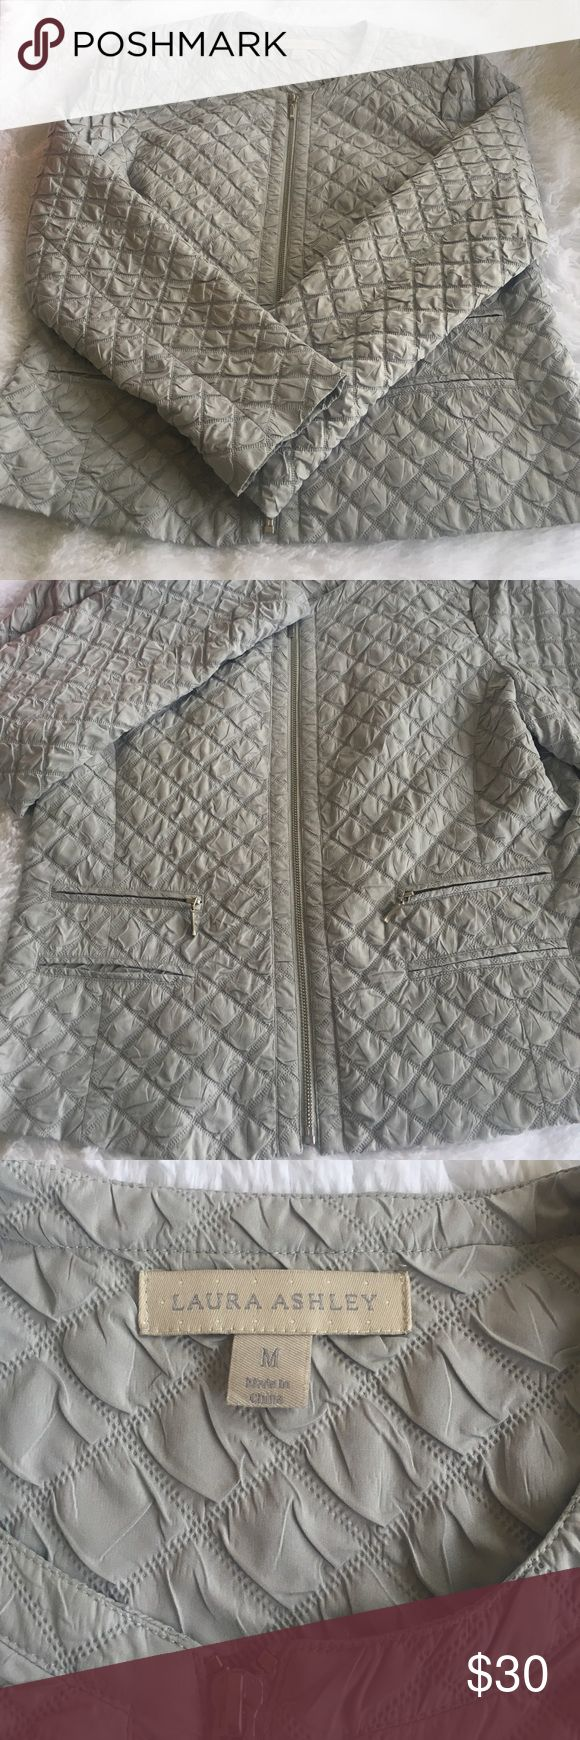 Lightweight quilted jacket Classy summer weight quilted jacket. Lined inside. Great condition Laura Ashley Jackets & Coats